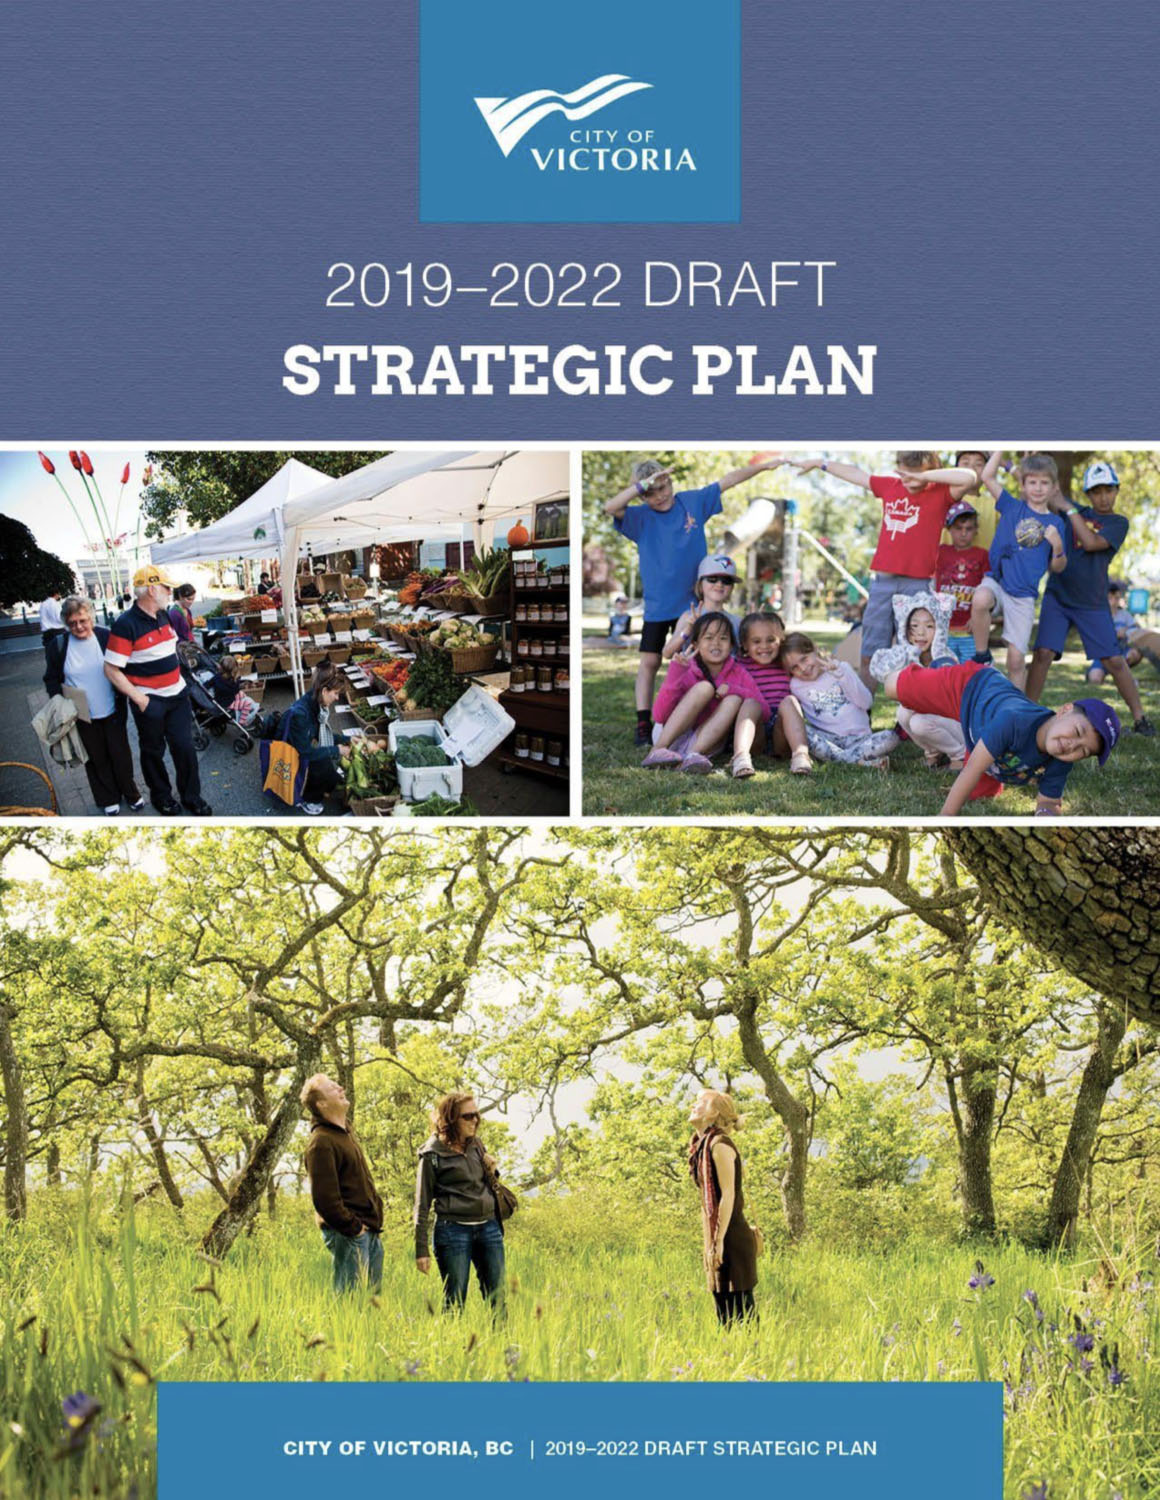 City of Victoria - Draft Strategic Plan - 2019-2022  copy.jpg